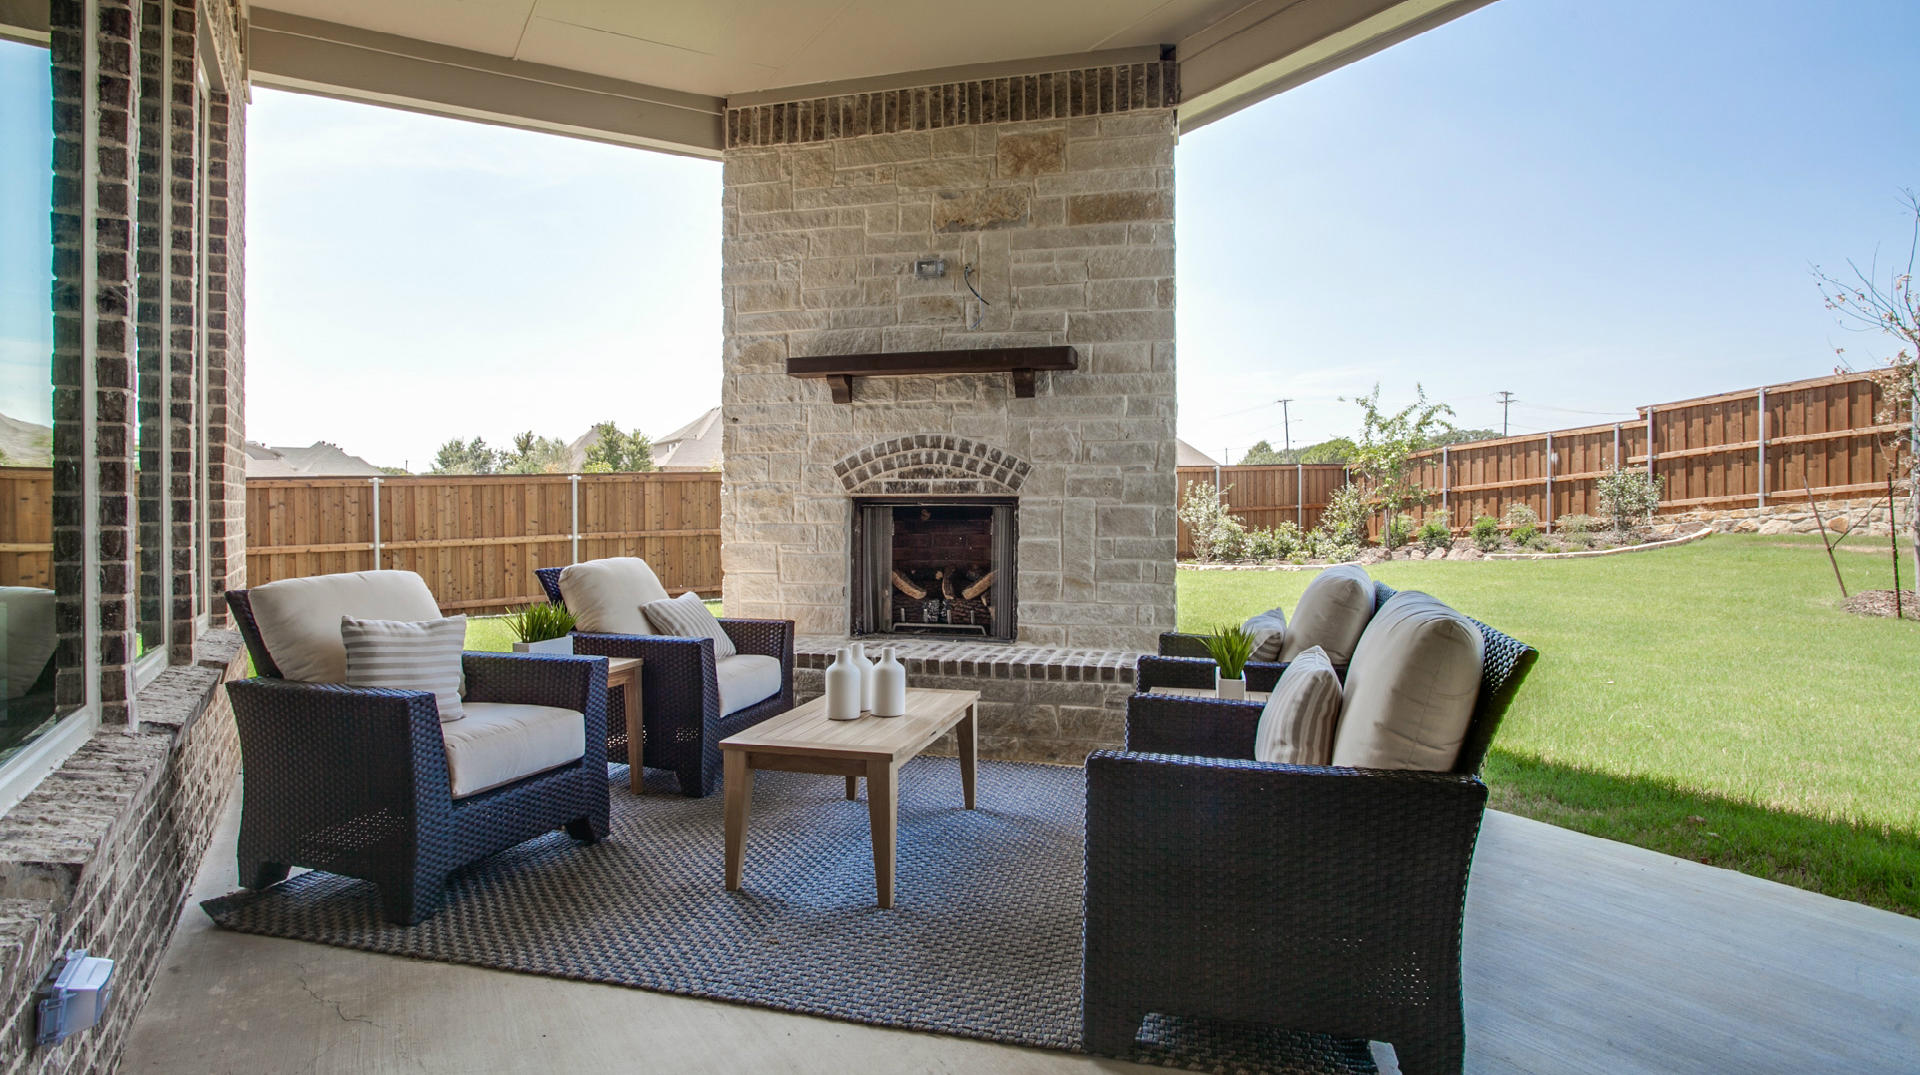 Reserve at Forest Glenn by Pulte Homes image 9